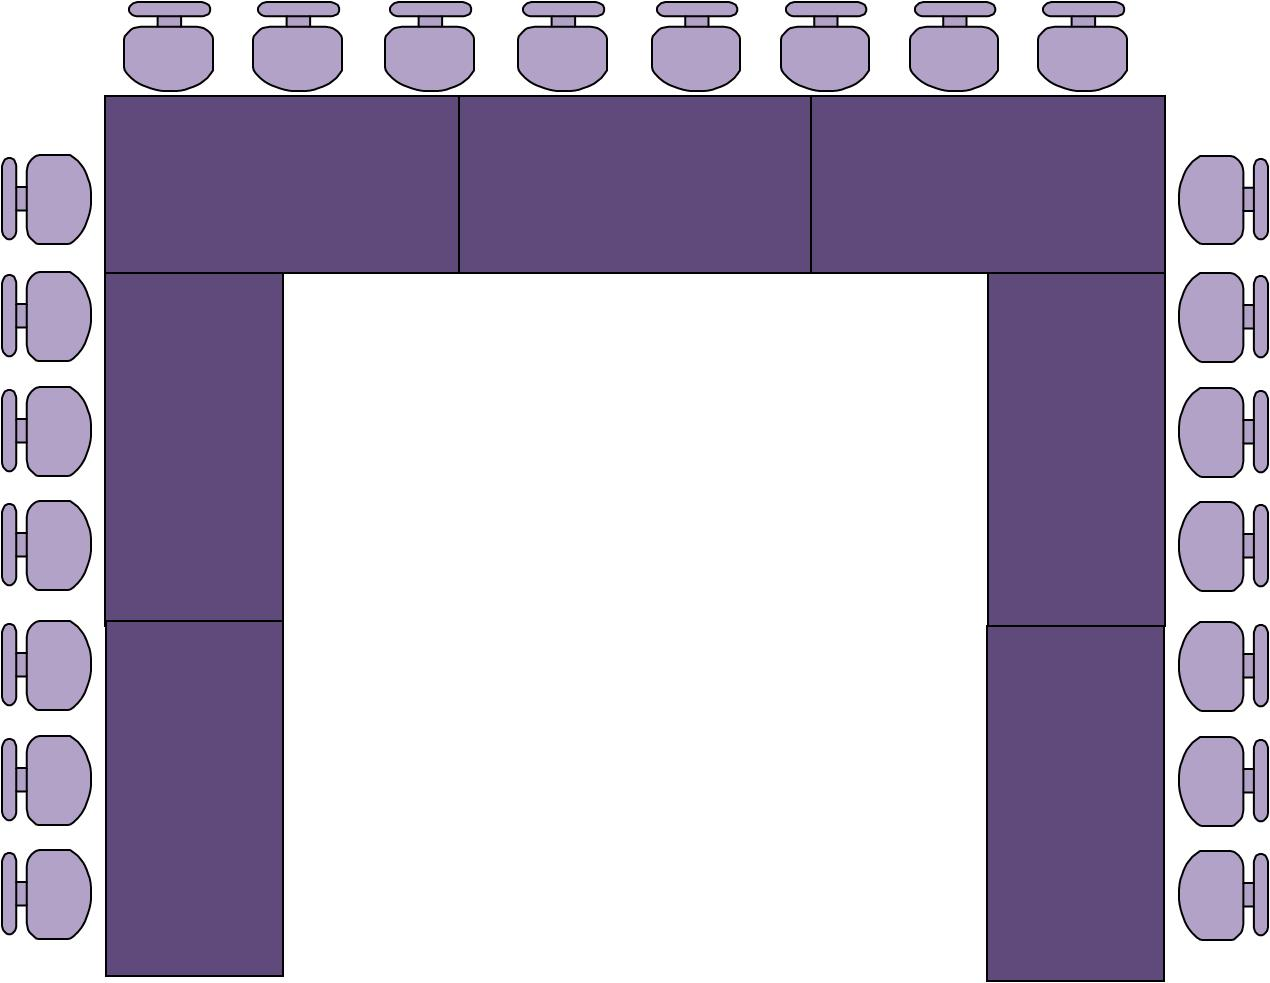 u shaped chair arrangement pink tufted seating arrangements for the classroom  online tefl